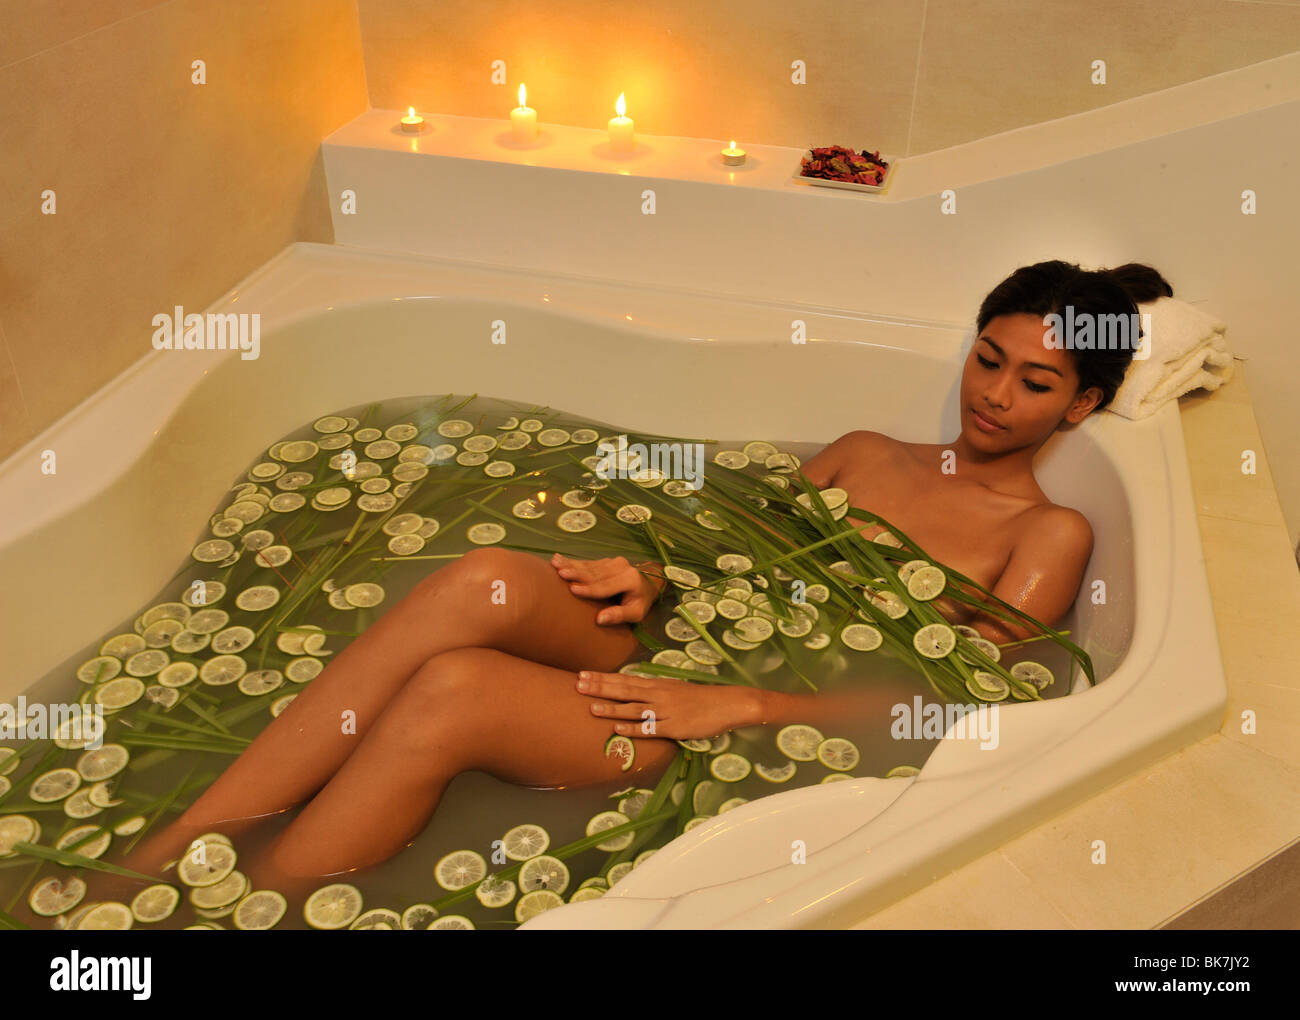 Bath with lime and lemongrass, The Spa at Thunderbird Resort, La Union, Philippines, Southeast Asia, Asia - Stock Image